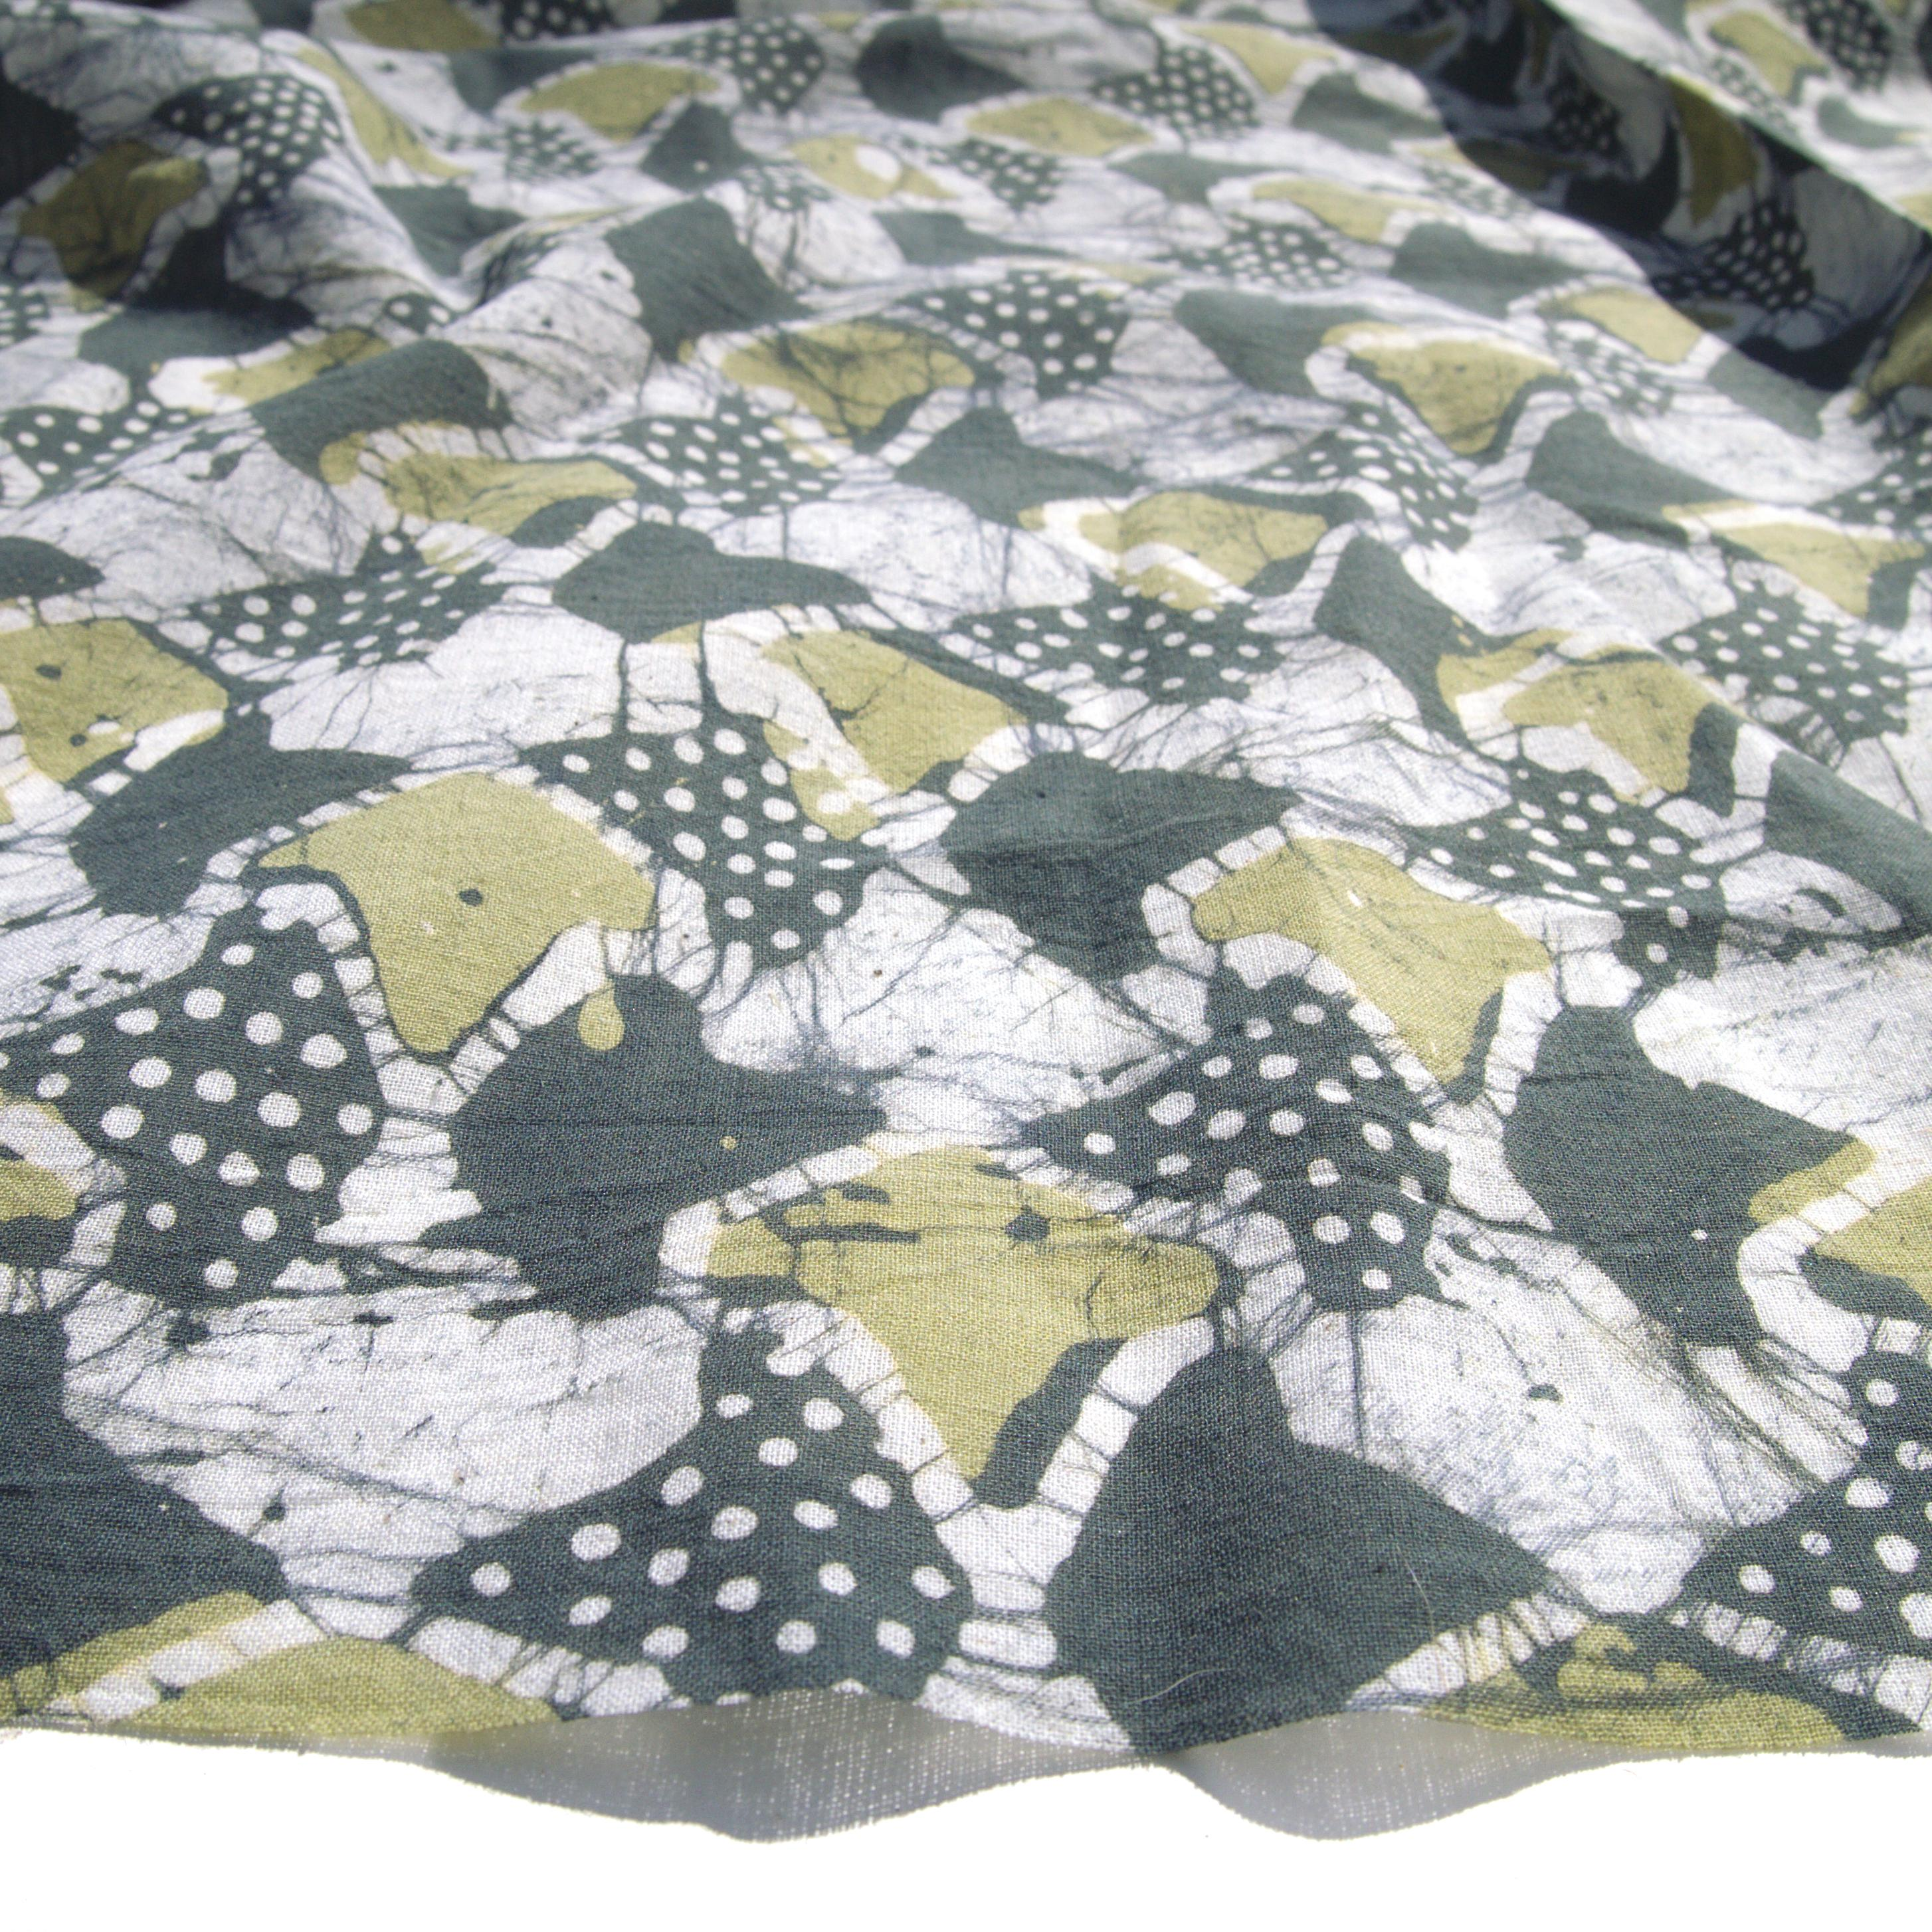 2 - SHA26 - 100% Block-Printed Batik Cotton Fabric From India - Sea Sponge Motif - Angle